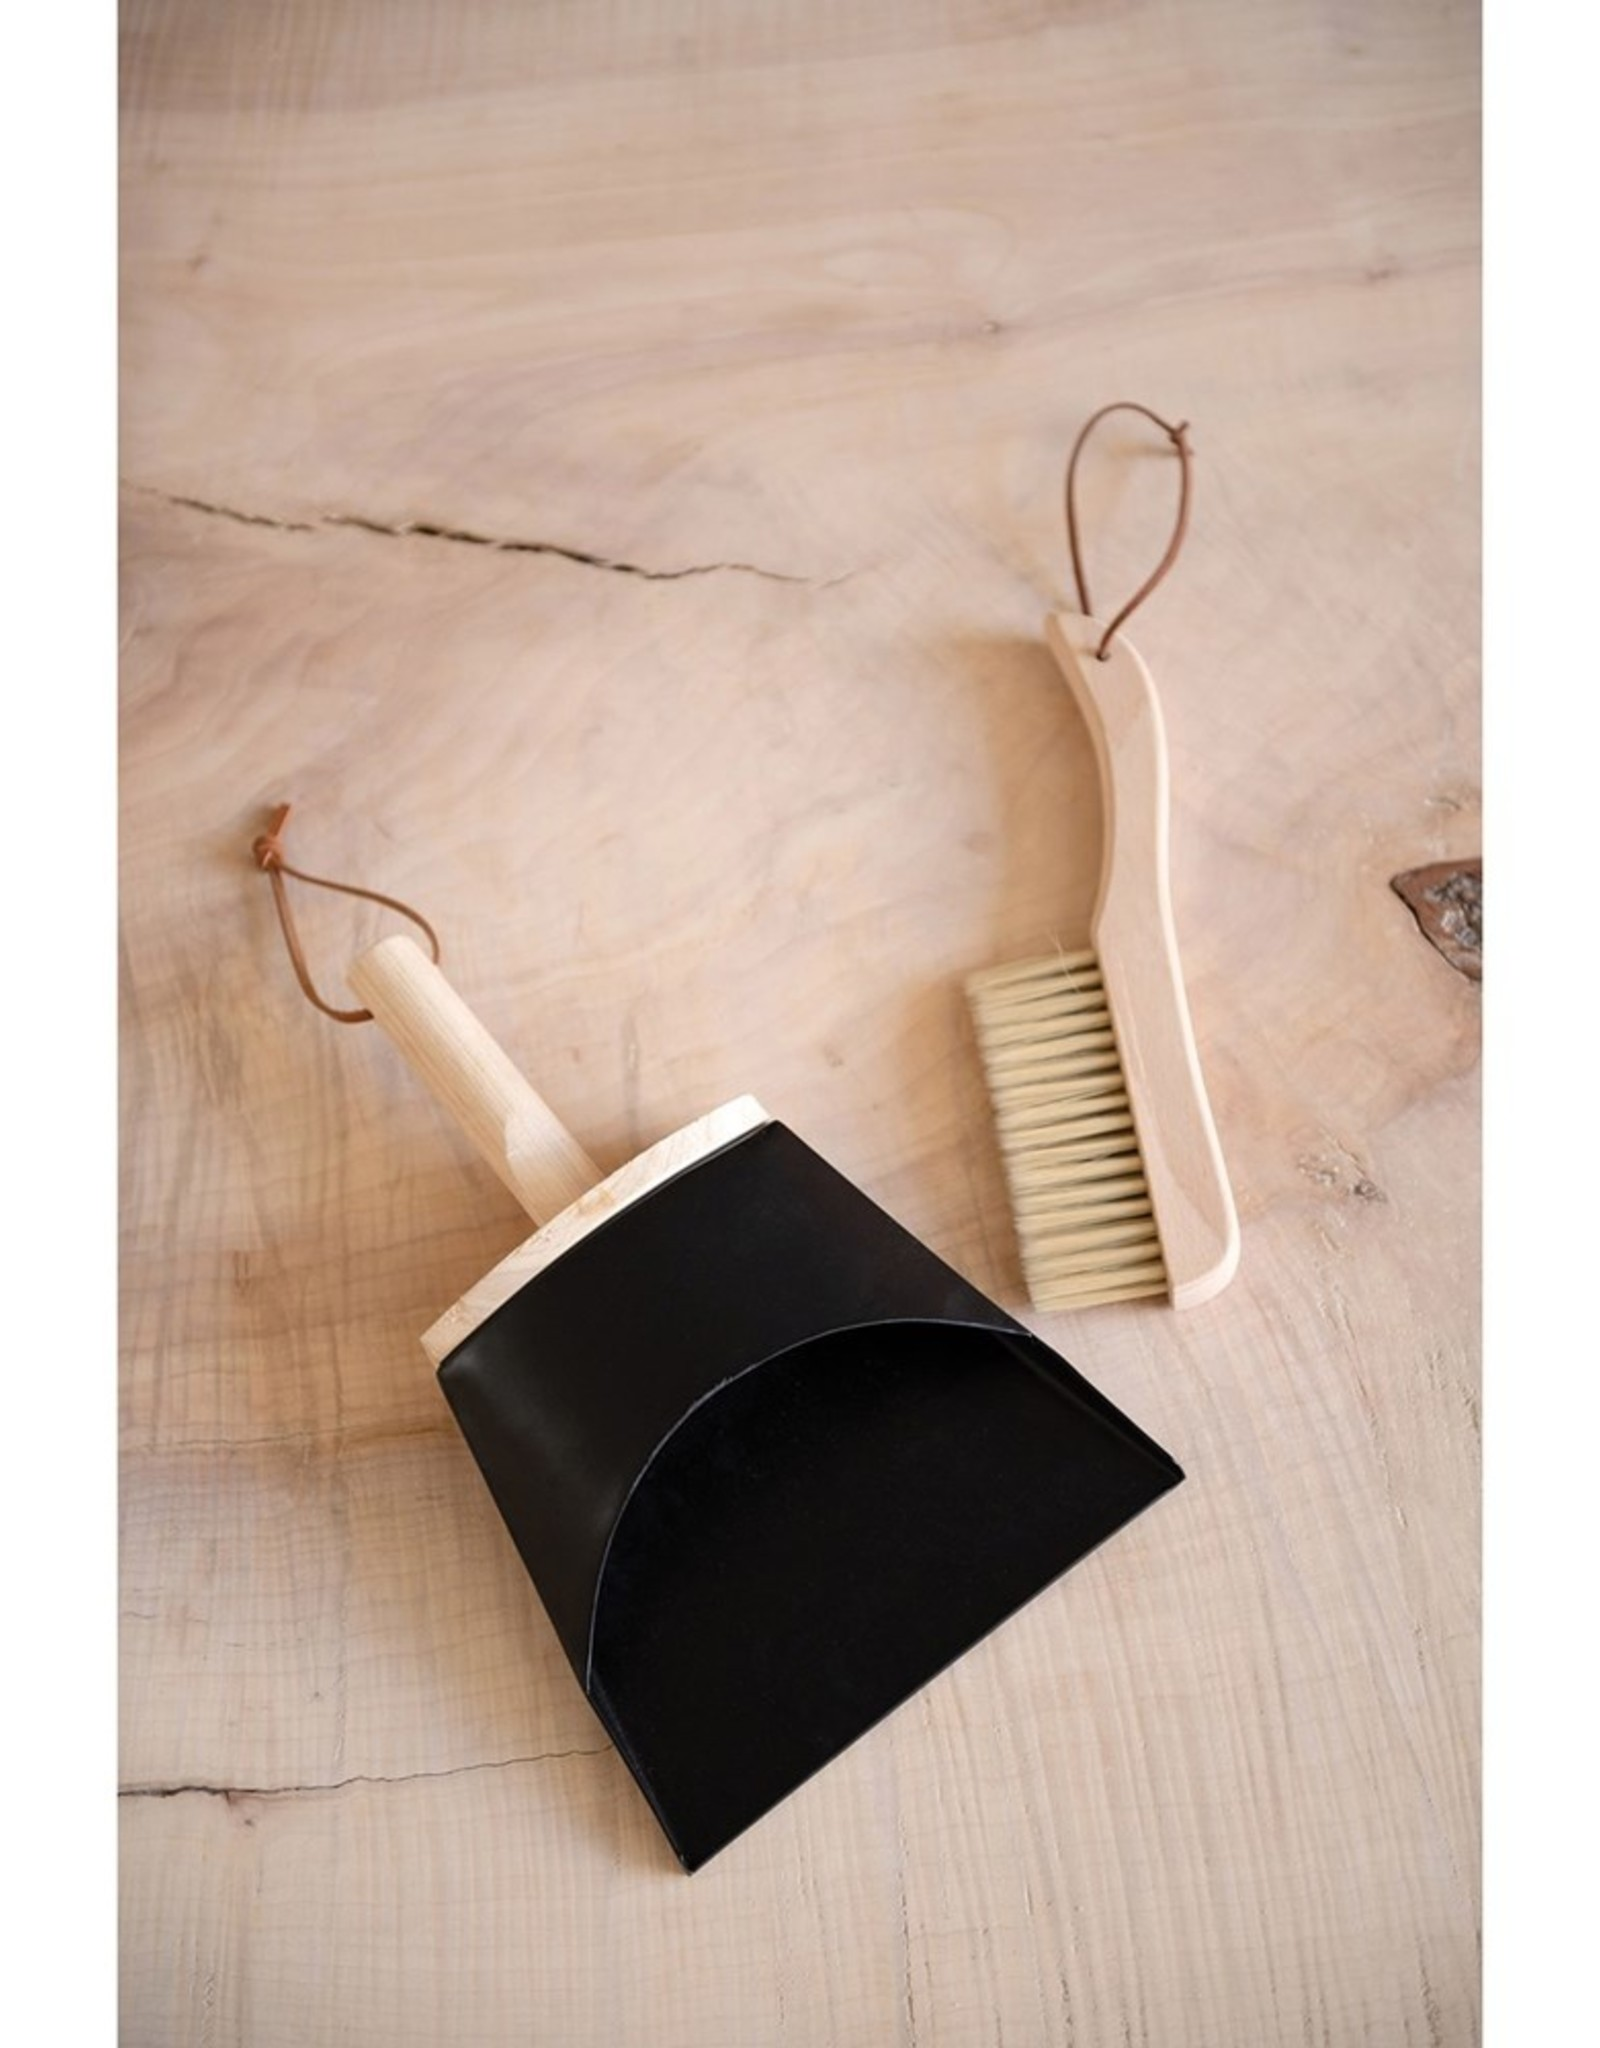 Metal and Wood Dustpan and Brush